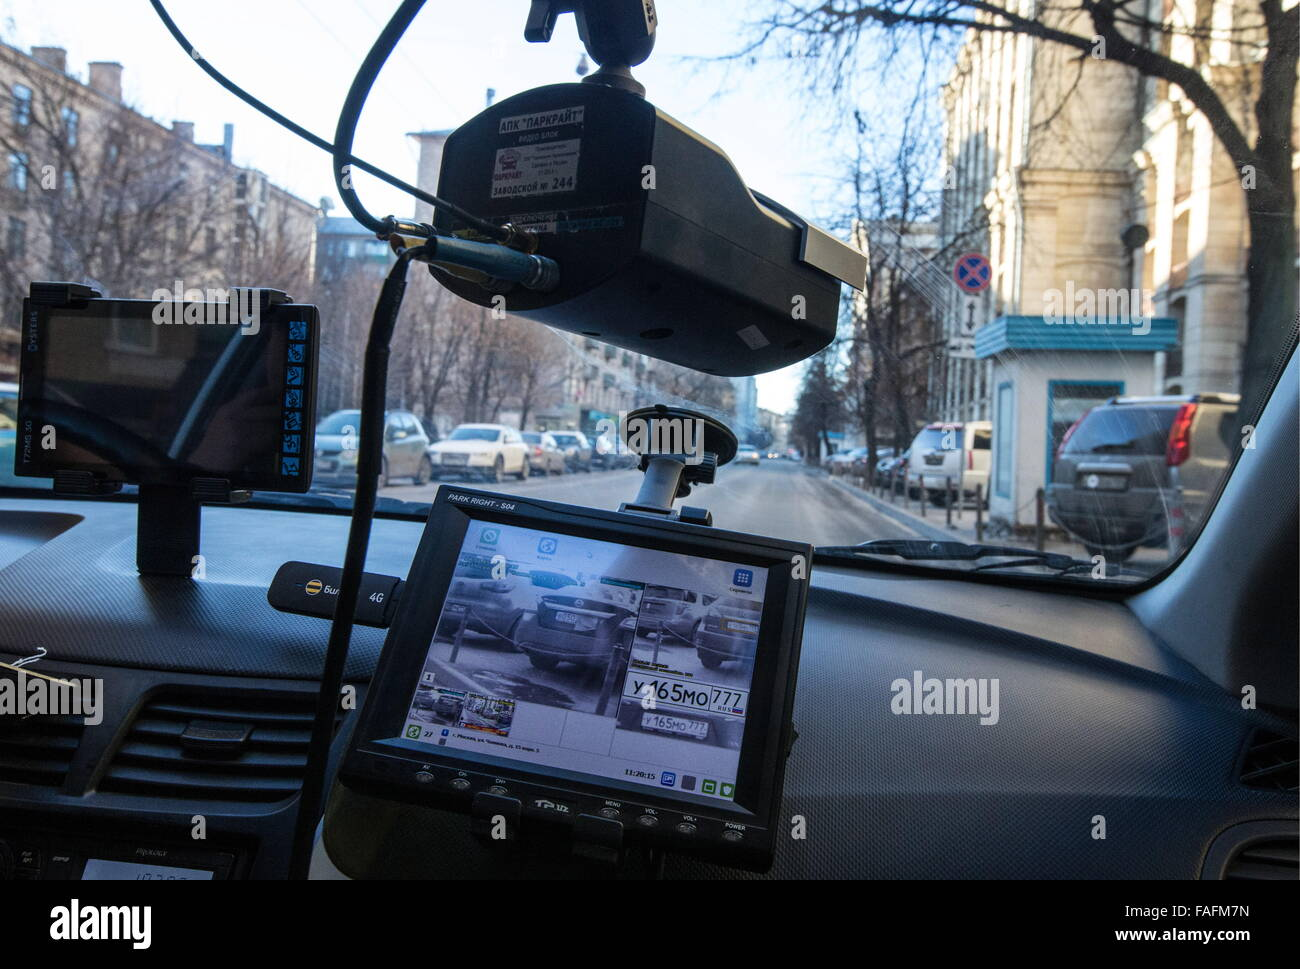 MOSCOW, RUSSIA. DECEMBER 28, 2018. A car fitted with a digital capture system operated by the Moscow Traffic Management - Stock Image